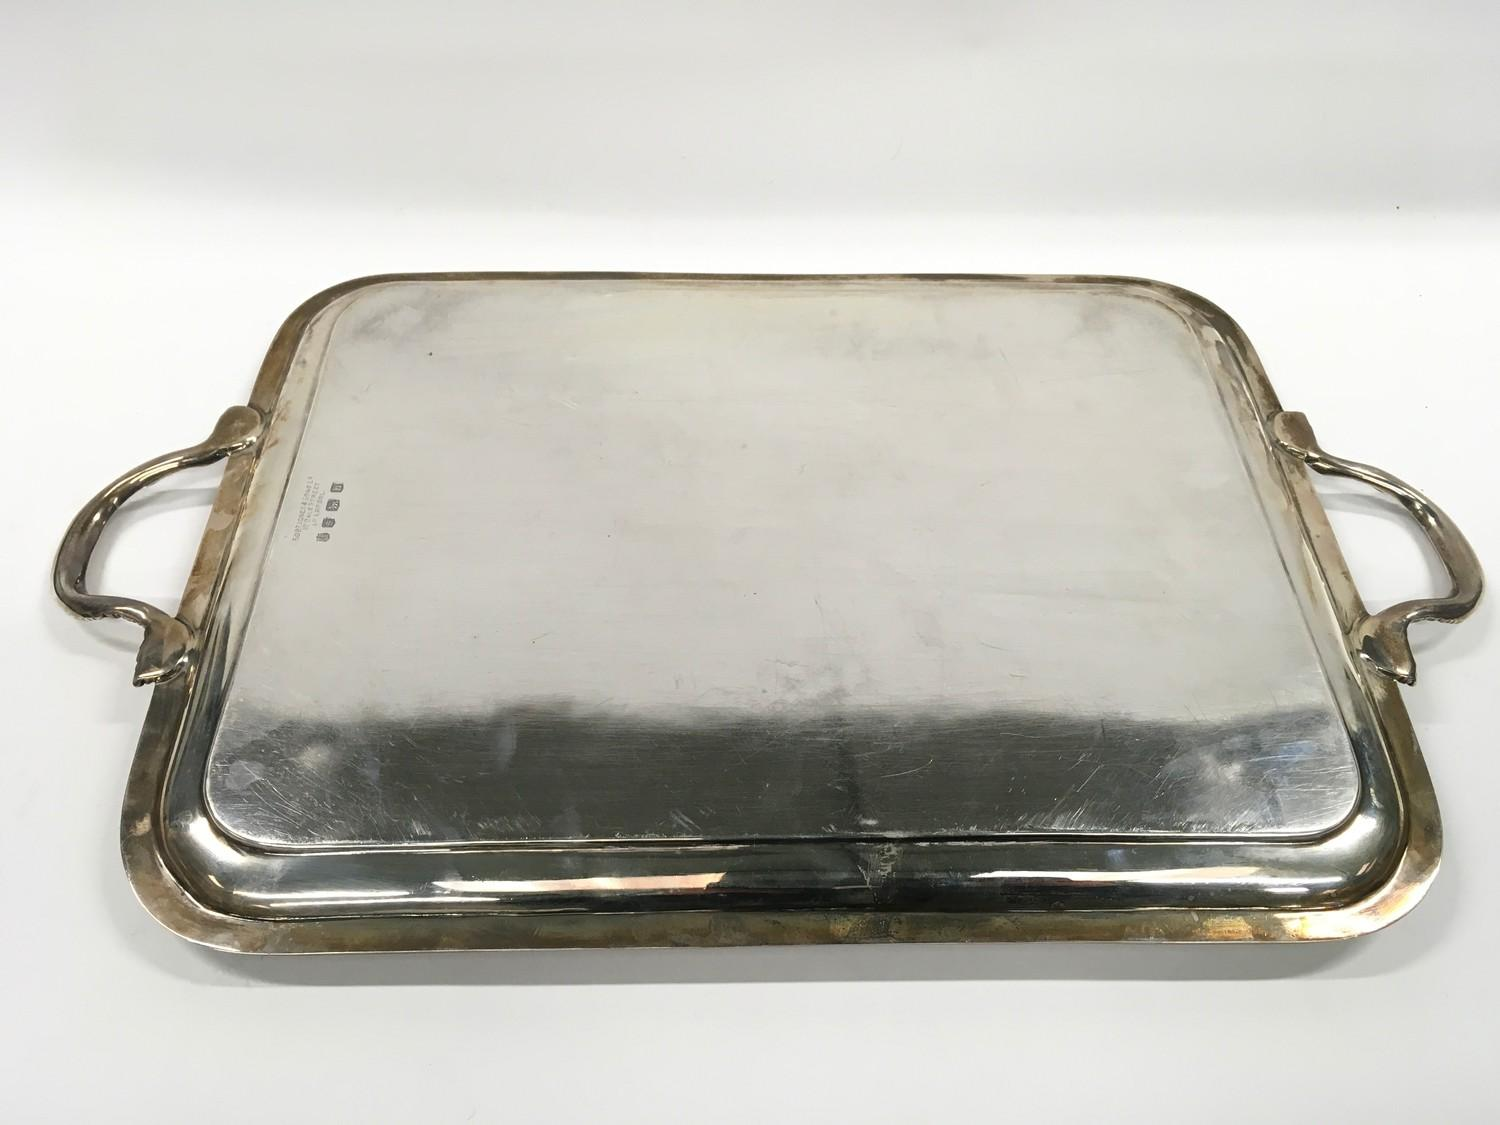 Large two handed Silver tray of approximately 2 kilos in weight. - Image 4 of 5